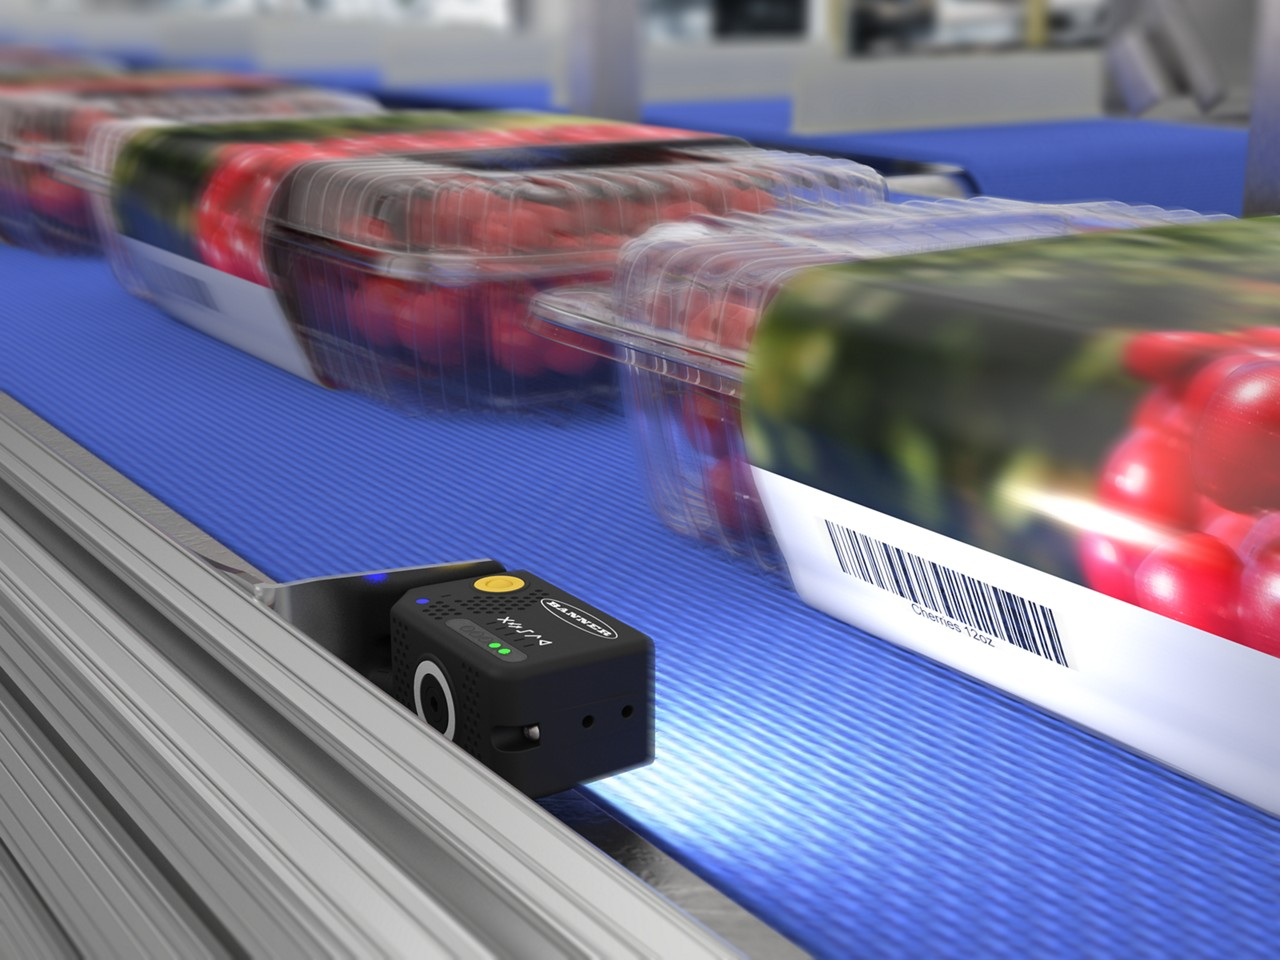 ABR 3000 tracks produce throughout packaging